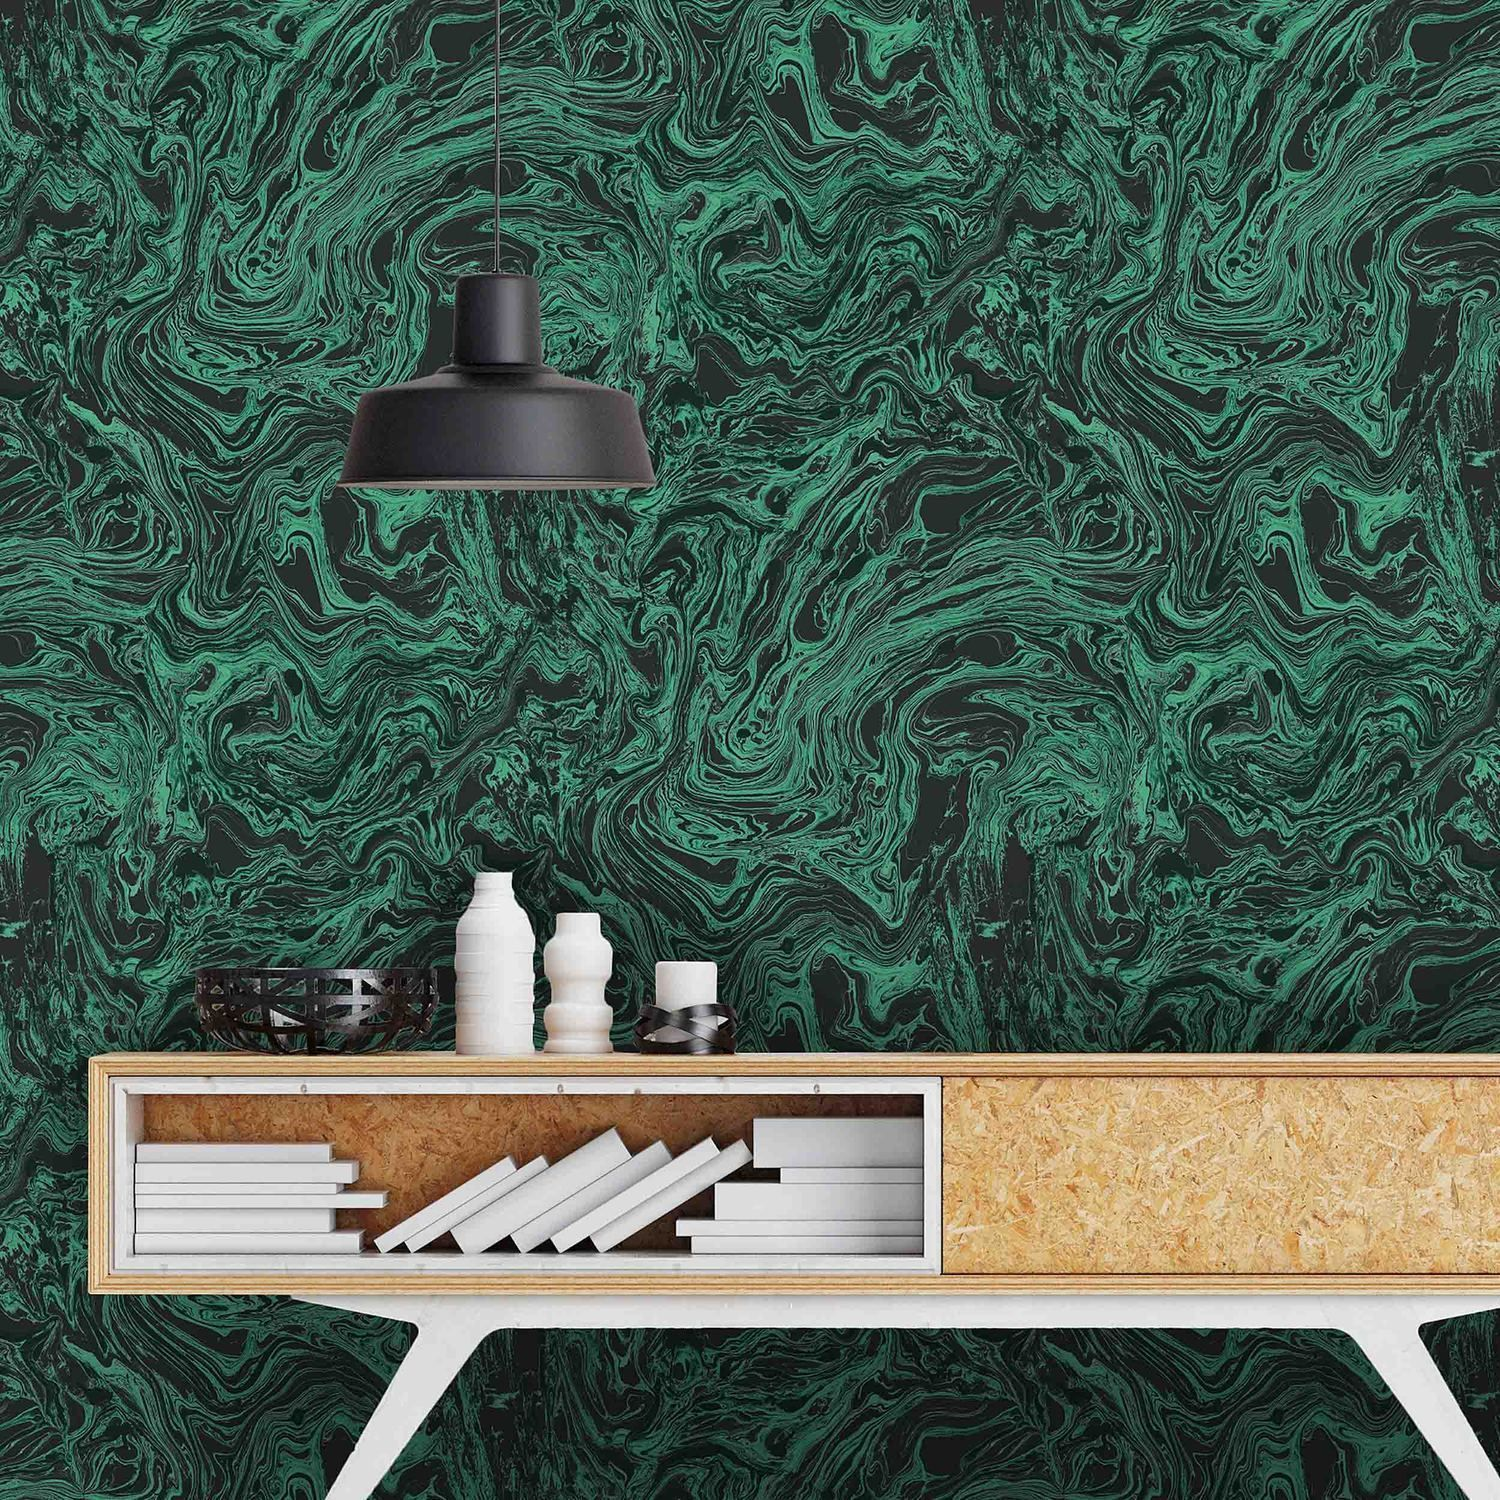 Marble Flow In Malachite Wallpaper by Woodchip & Magnolia